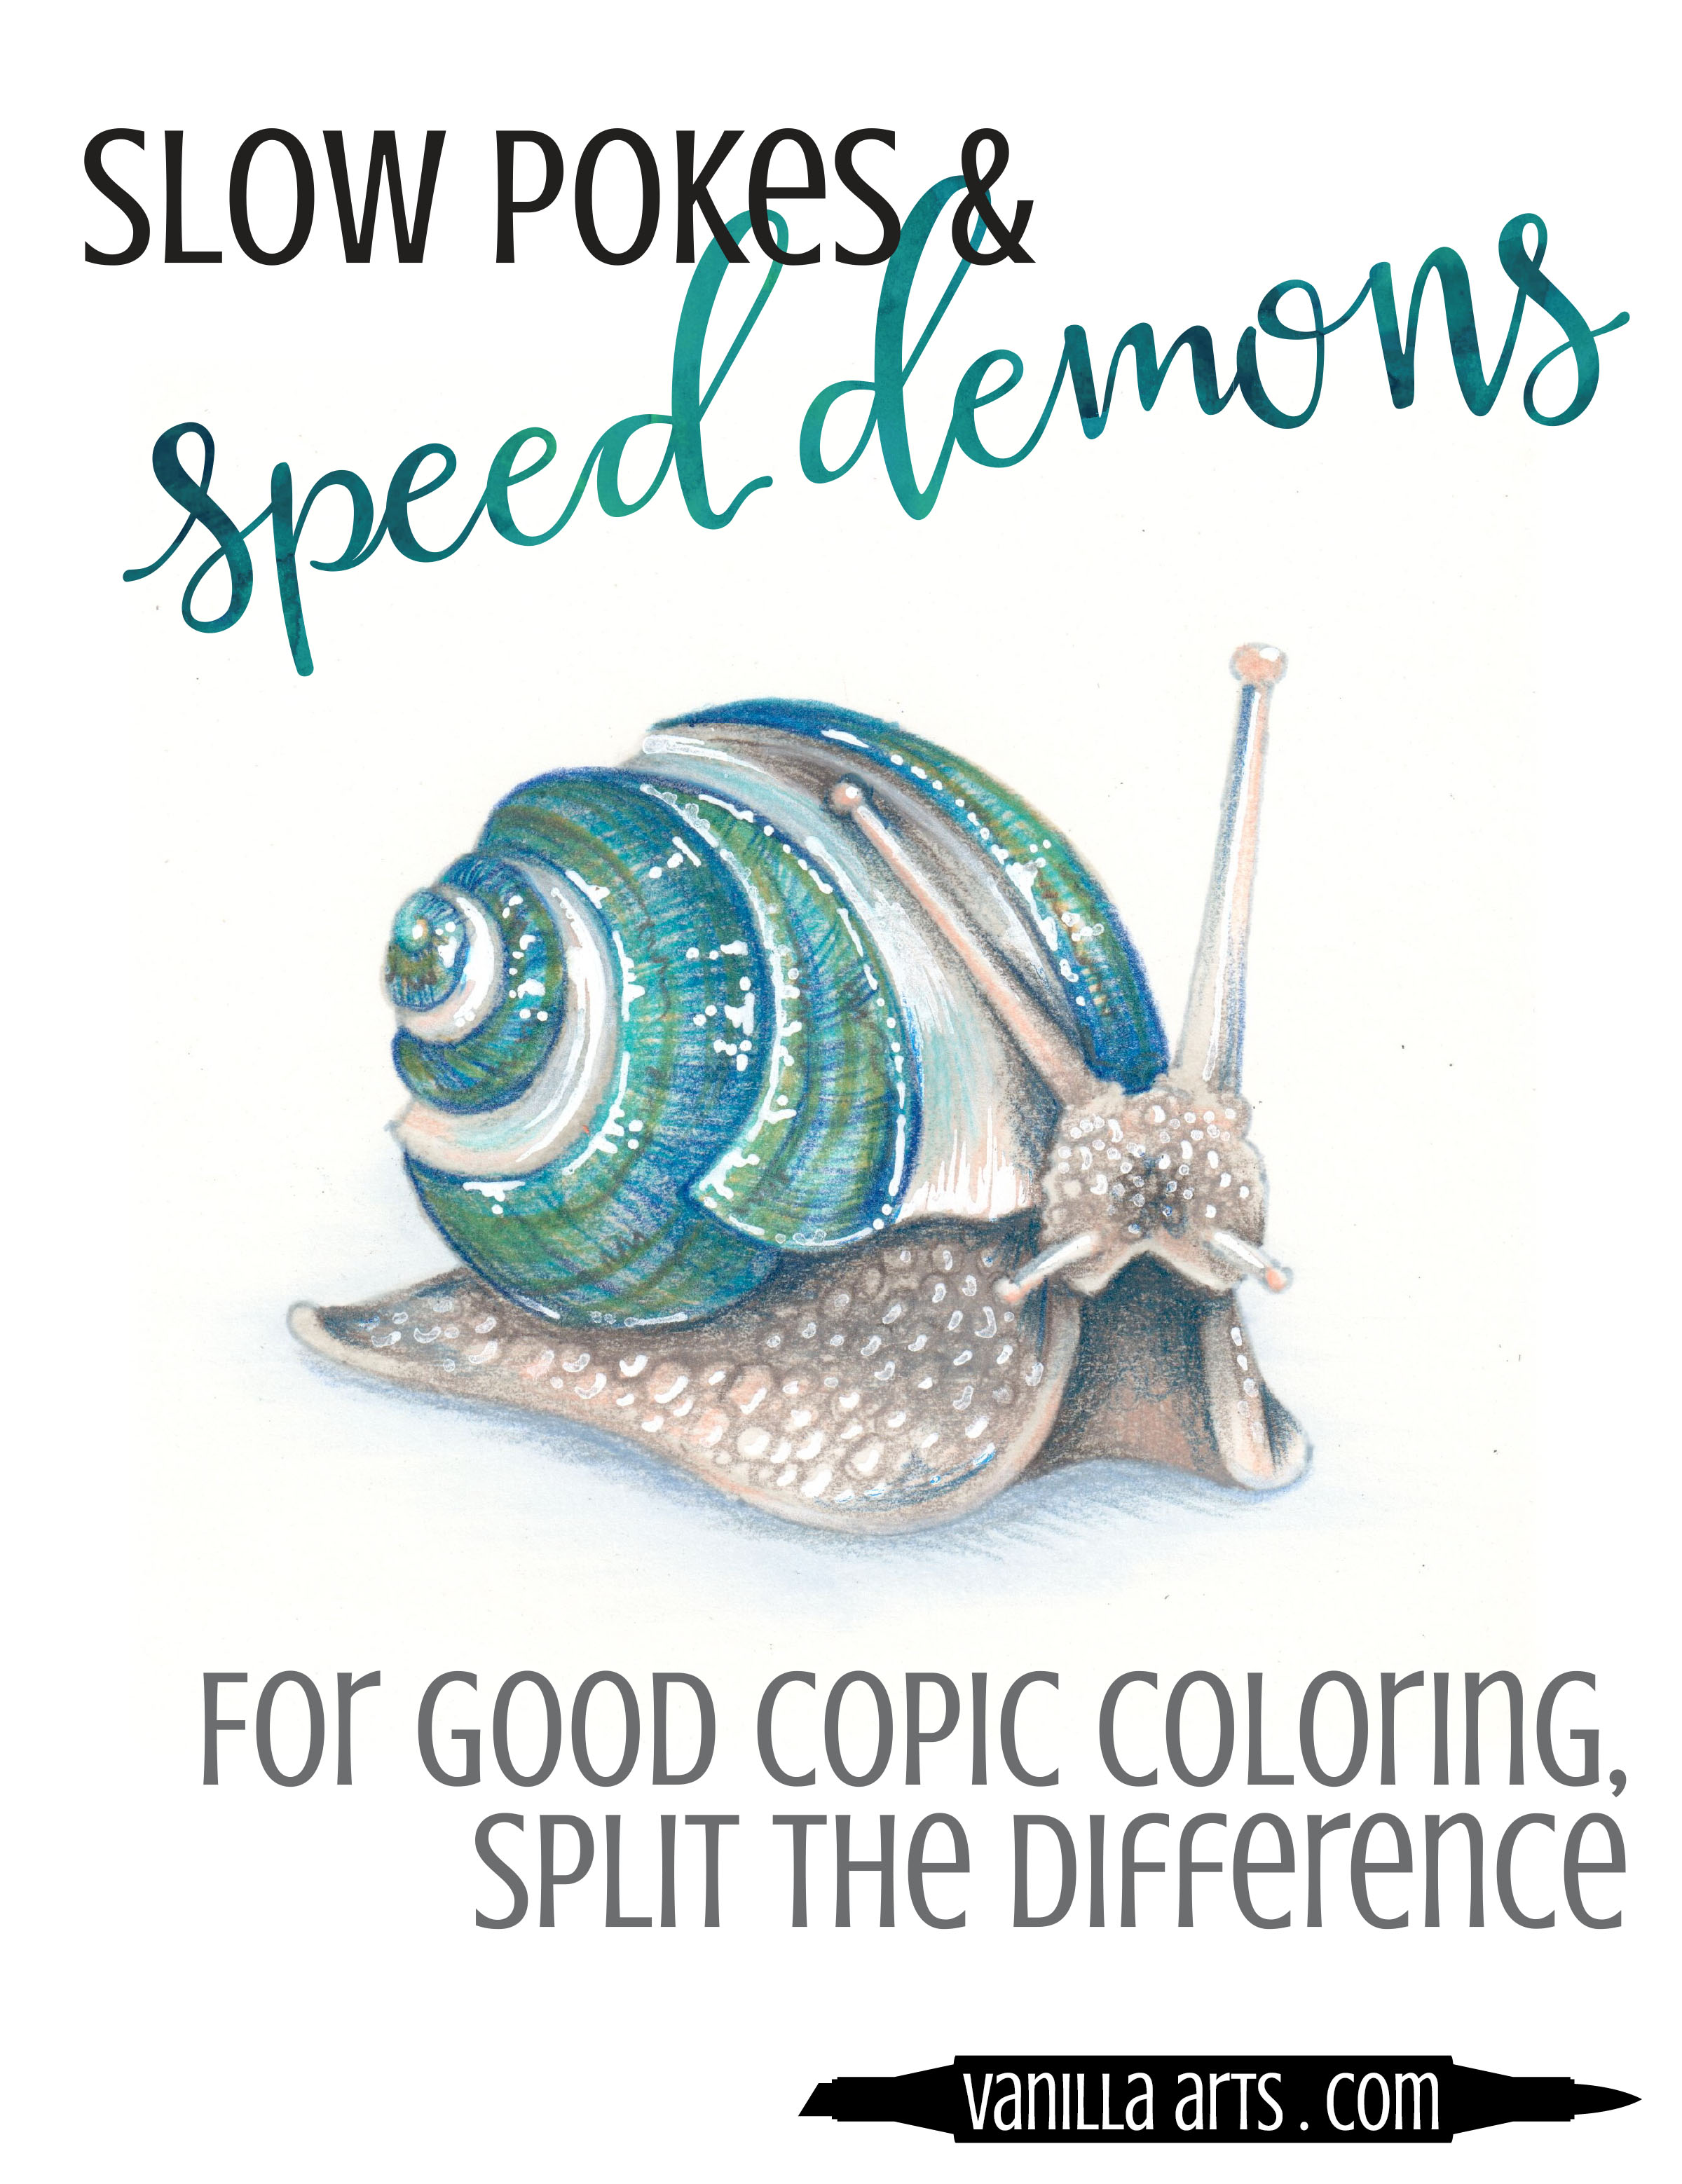 One Tiny Thing to improve your Copic coloring- watch your speed! Realistic coloring, realistic advice. Learn more at VanillaArts.com